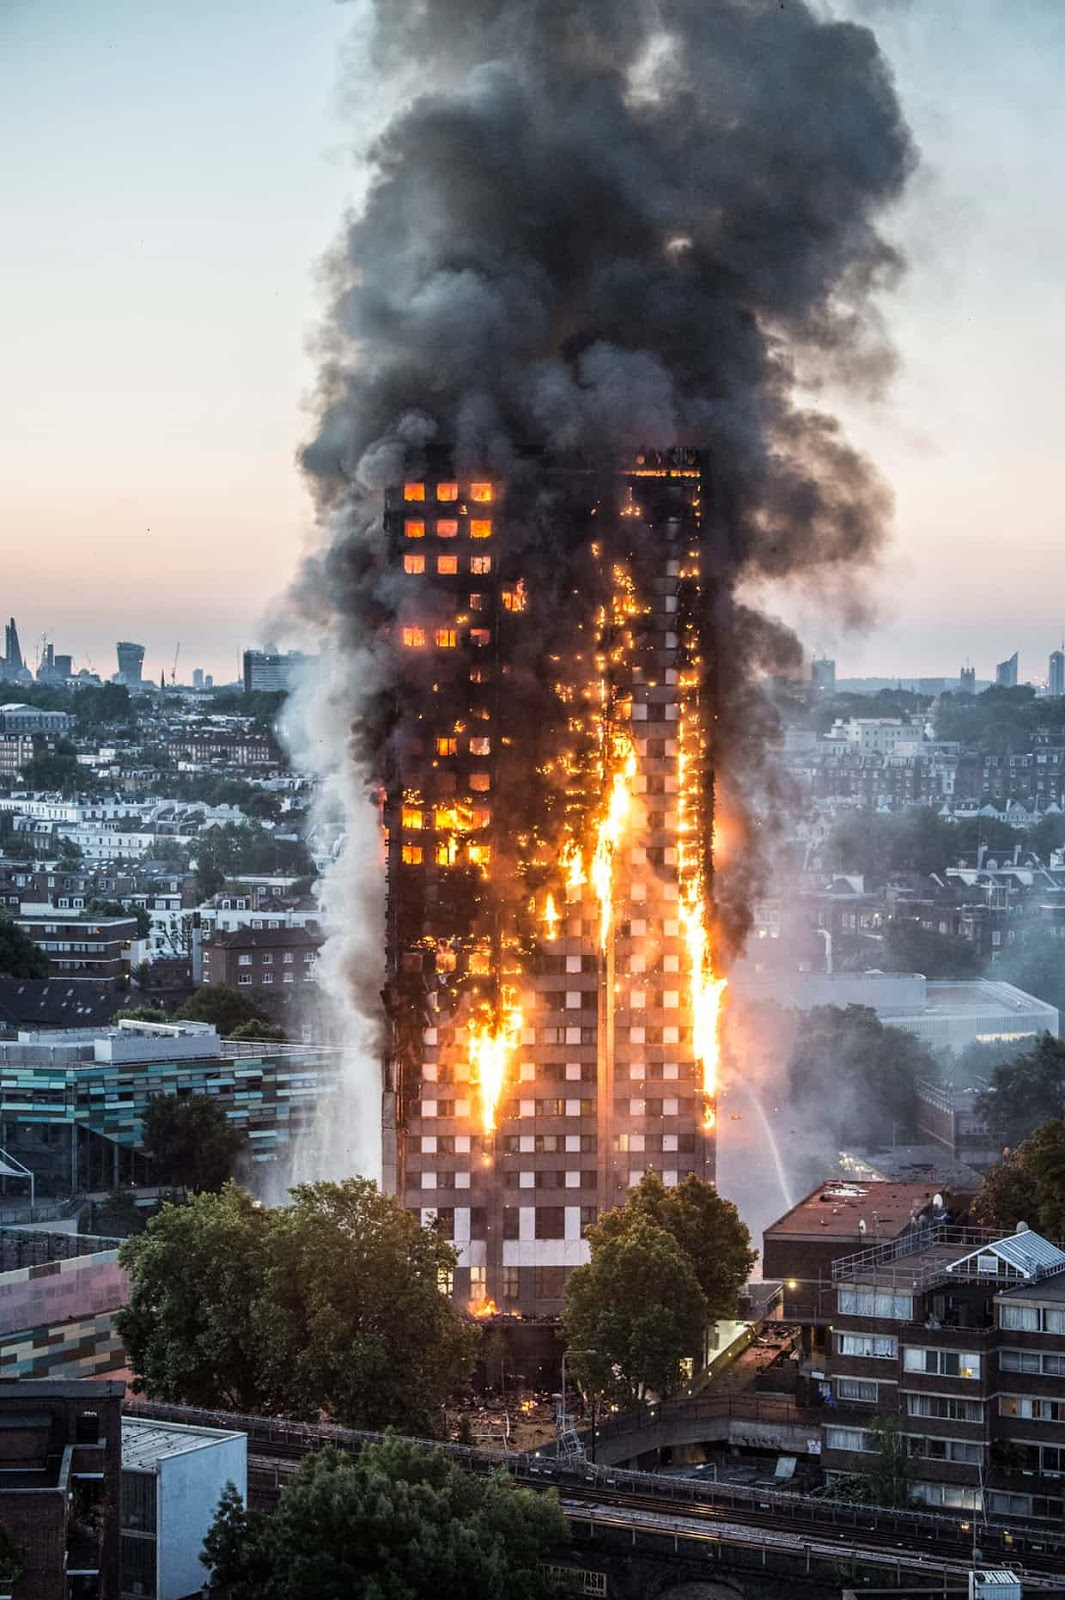 25 Of The Most Intriguing Pictures Of 2017 - A blaze engulfs Grenfell Tower in Notting Hill